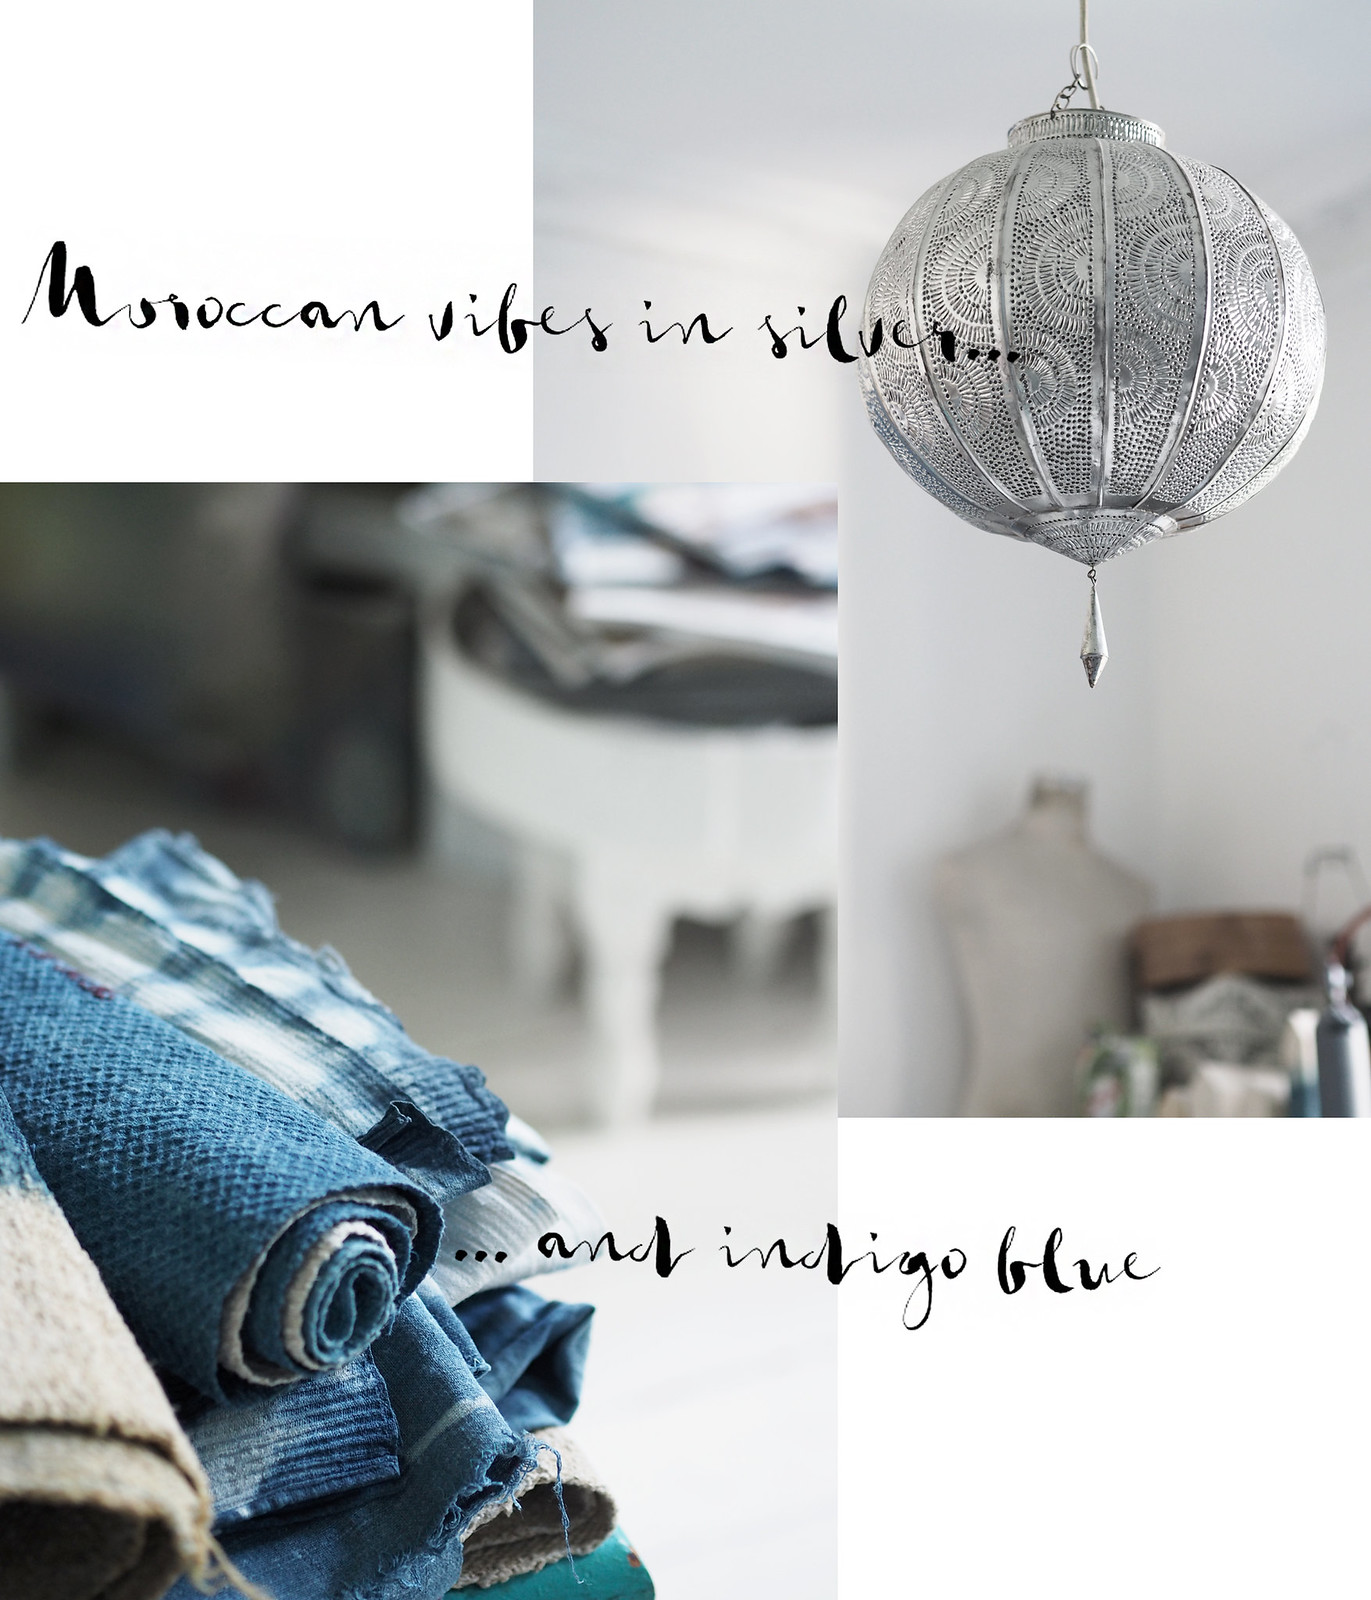 ranipink shibori workshop etsy hannover maroccan interior indigo blue dying process colouring clothes textiles diy how to lifestyle lifestyleblogger diyblogger cats & dogs fashion blog ricarda schernus 9